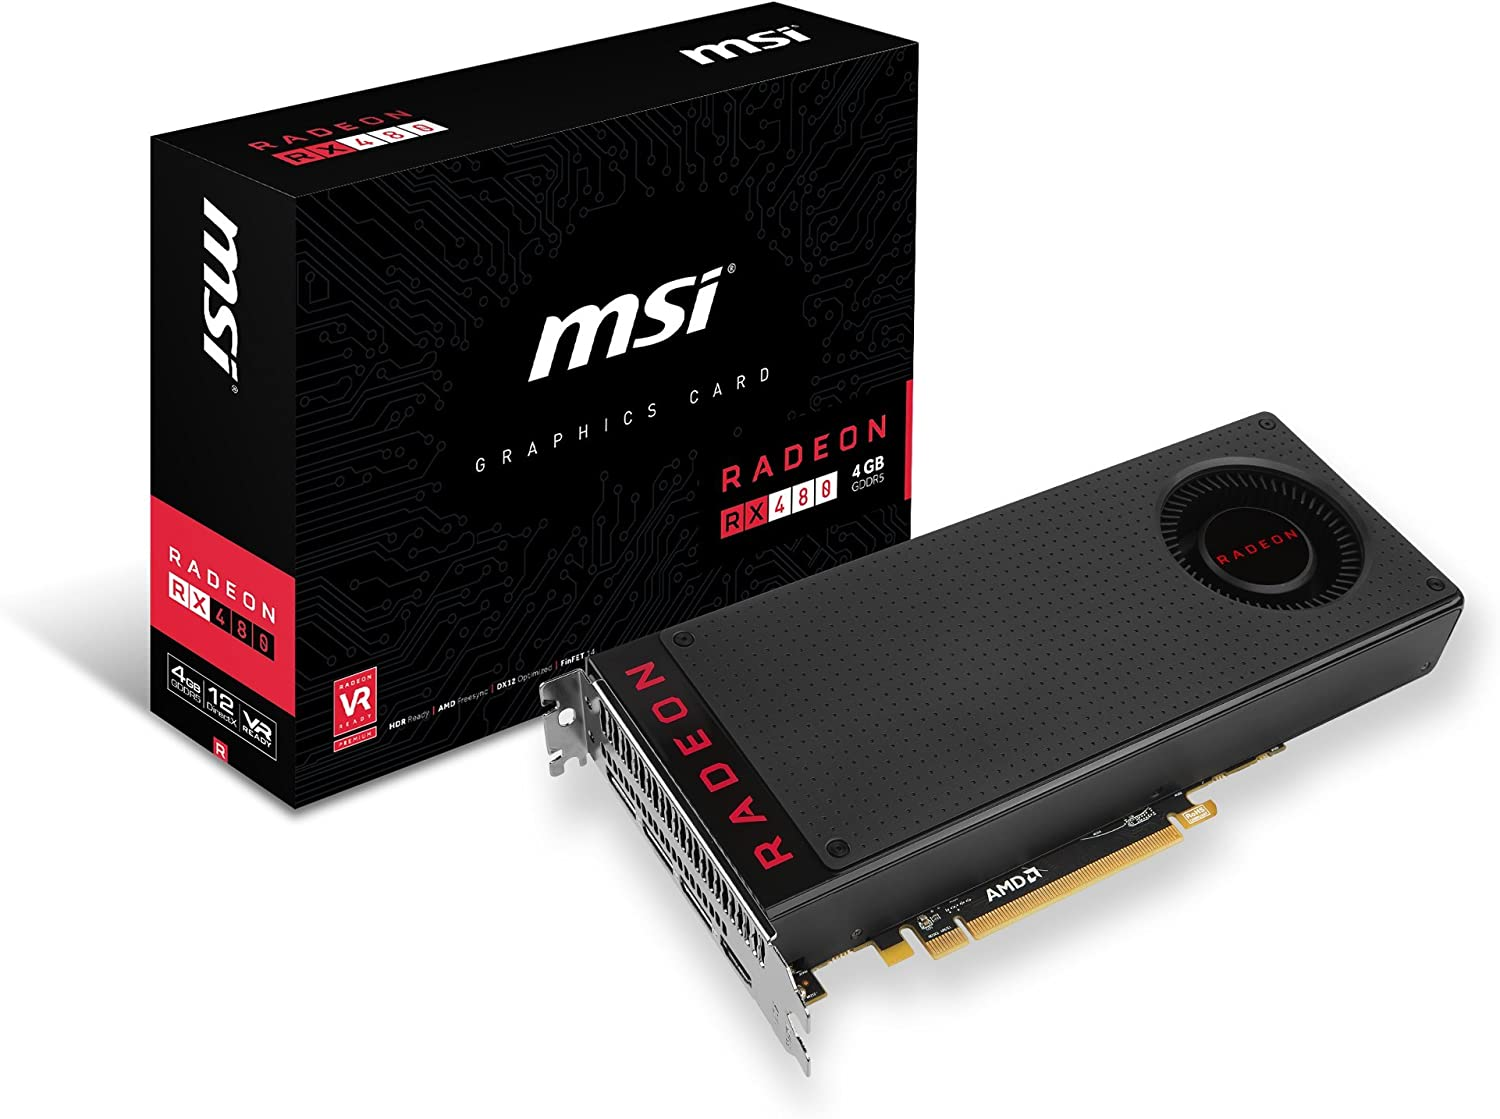 MSI RX 480 4G Graphic Cards